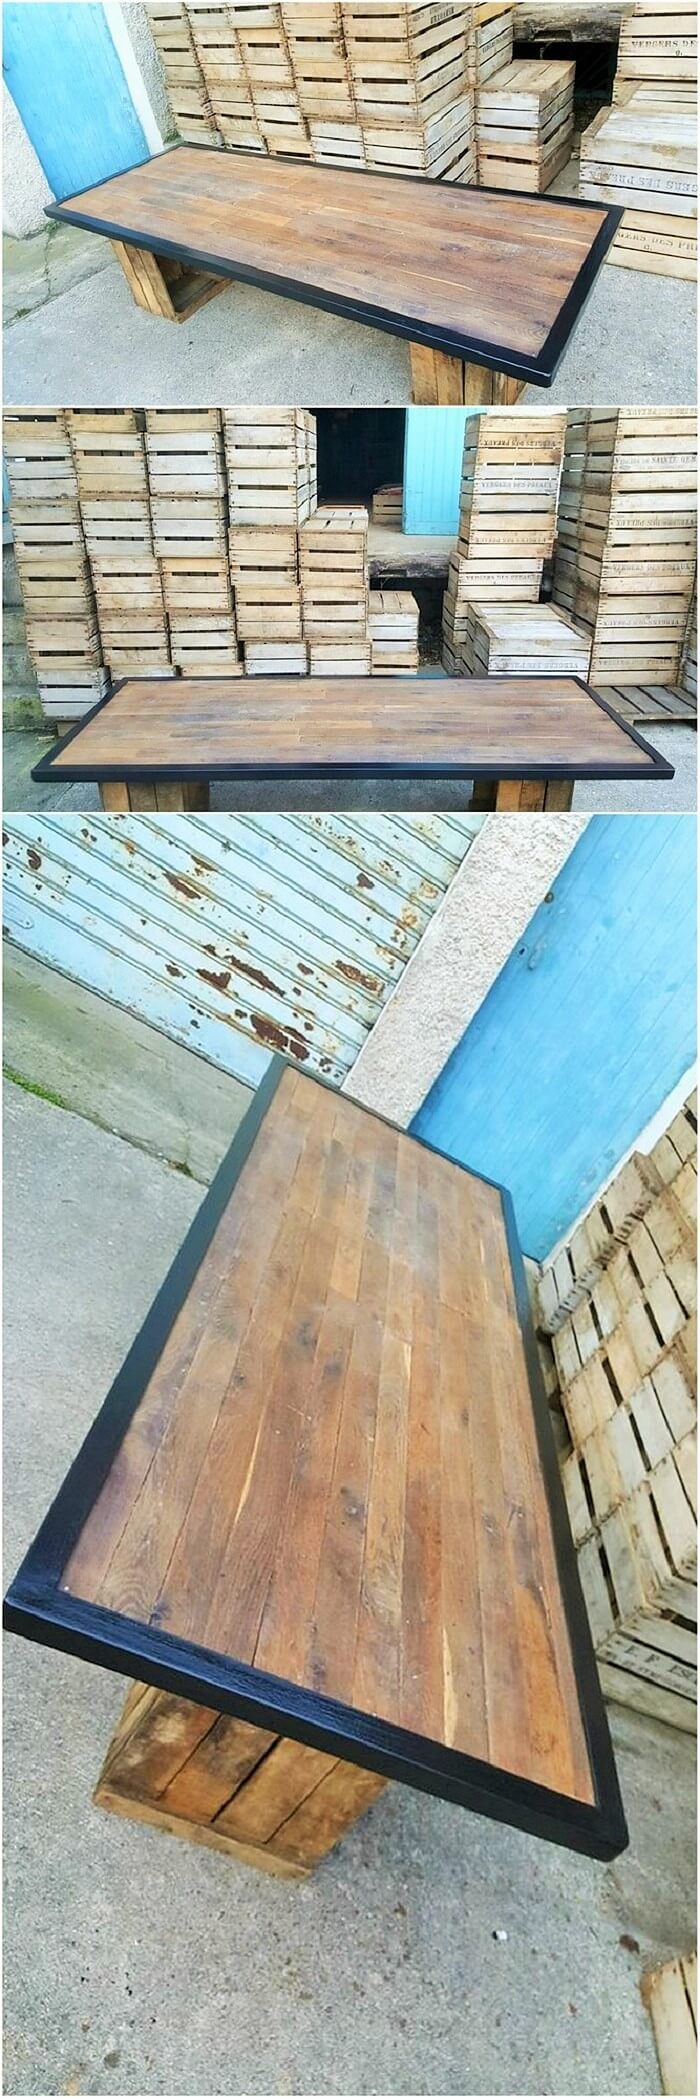 Wood-Pallet-Homemade-Furniture-Table (2)